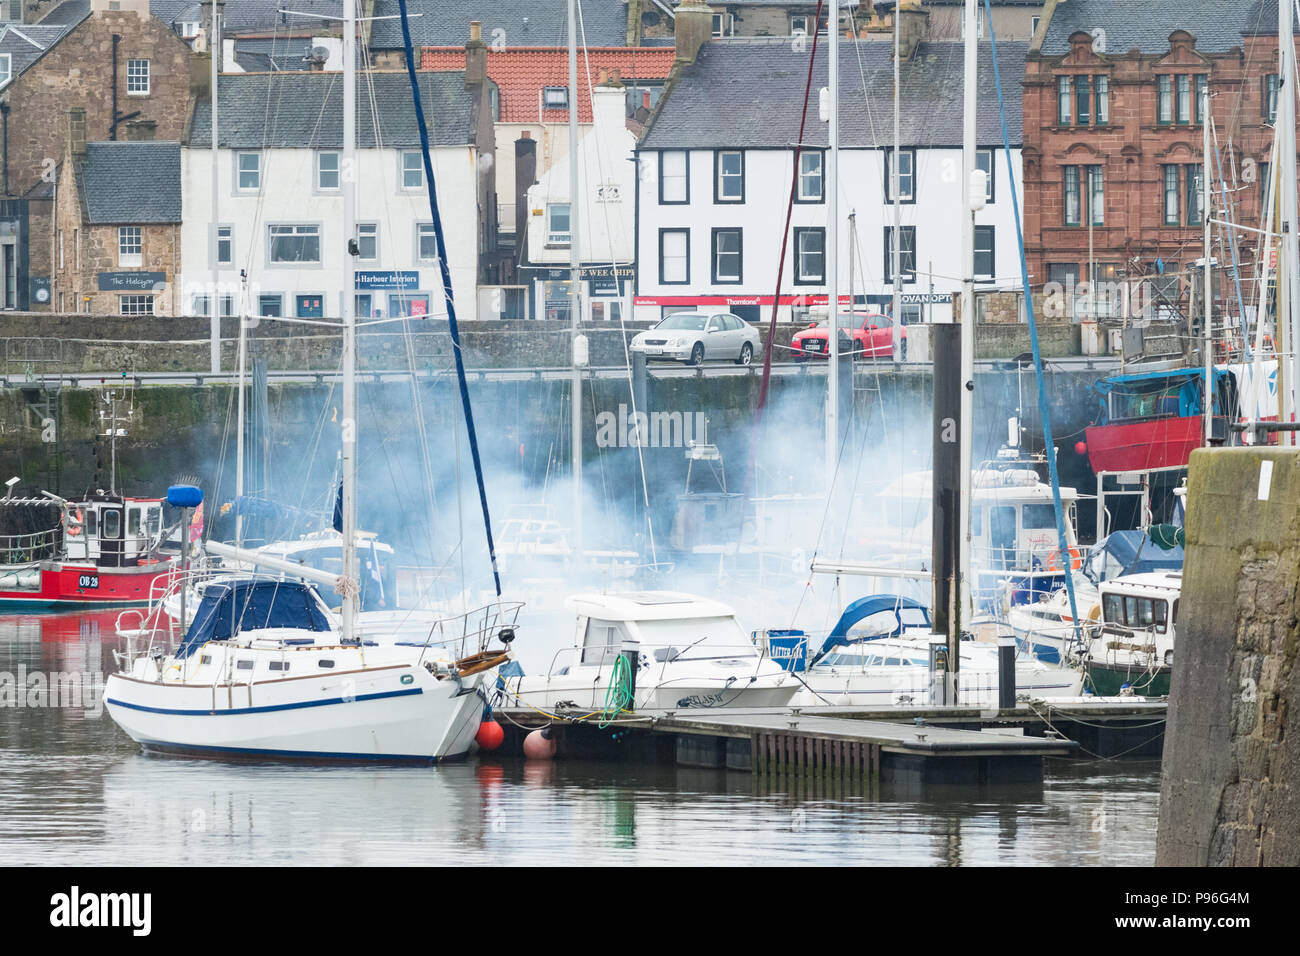 white smoke coming from just started boat diesel engine - Stock Image